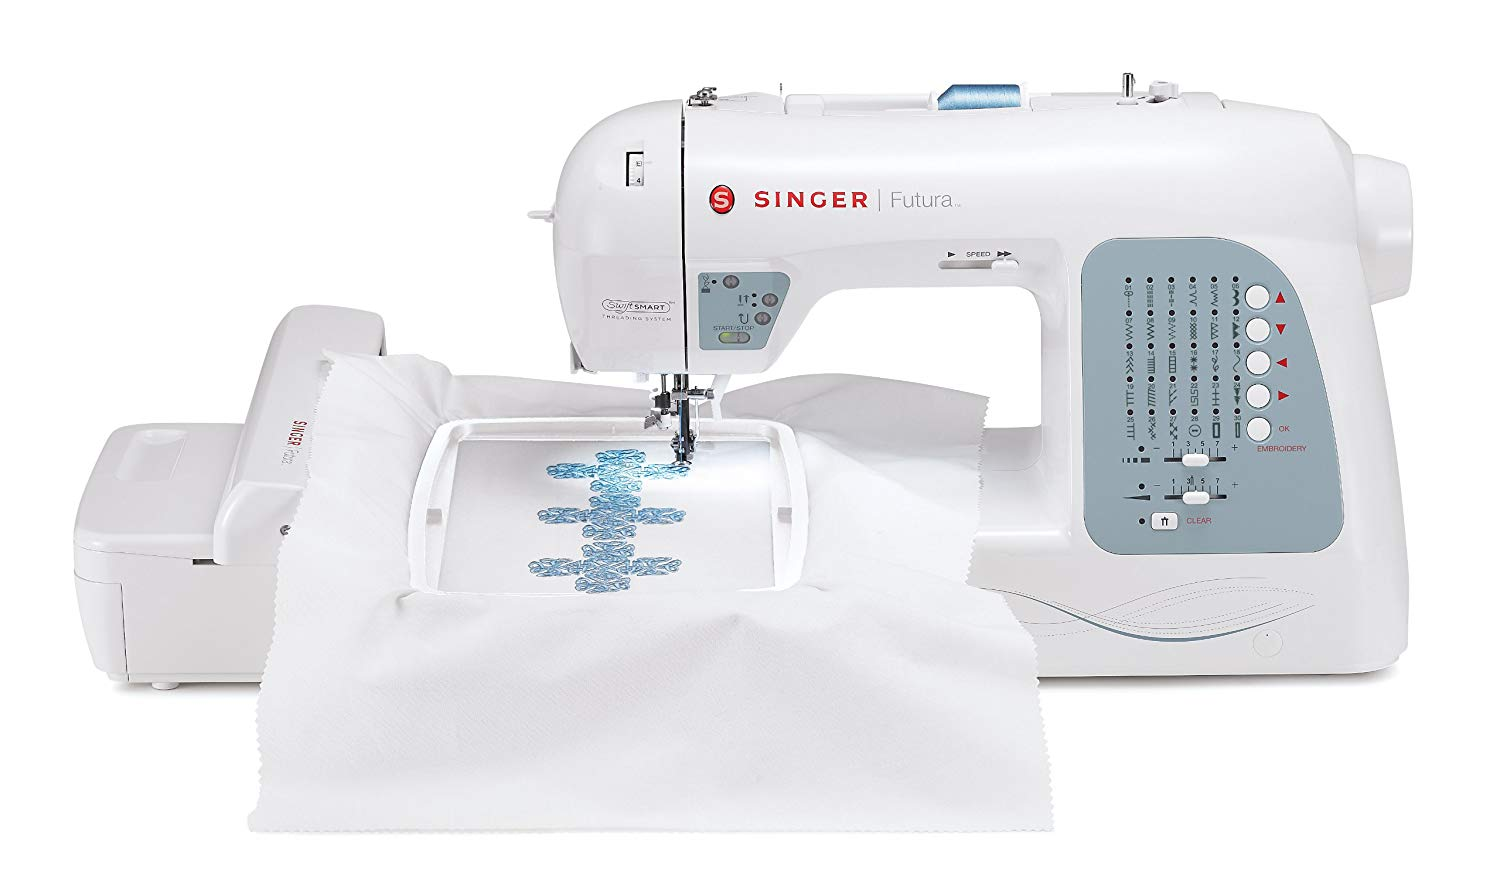 Singer Futura XL400 - Sewing & Embroidery Machine